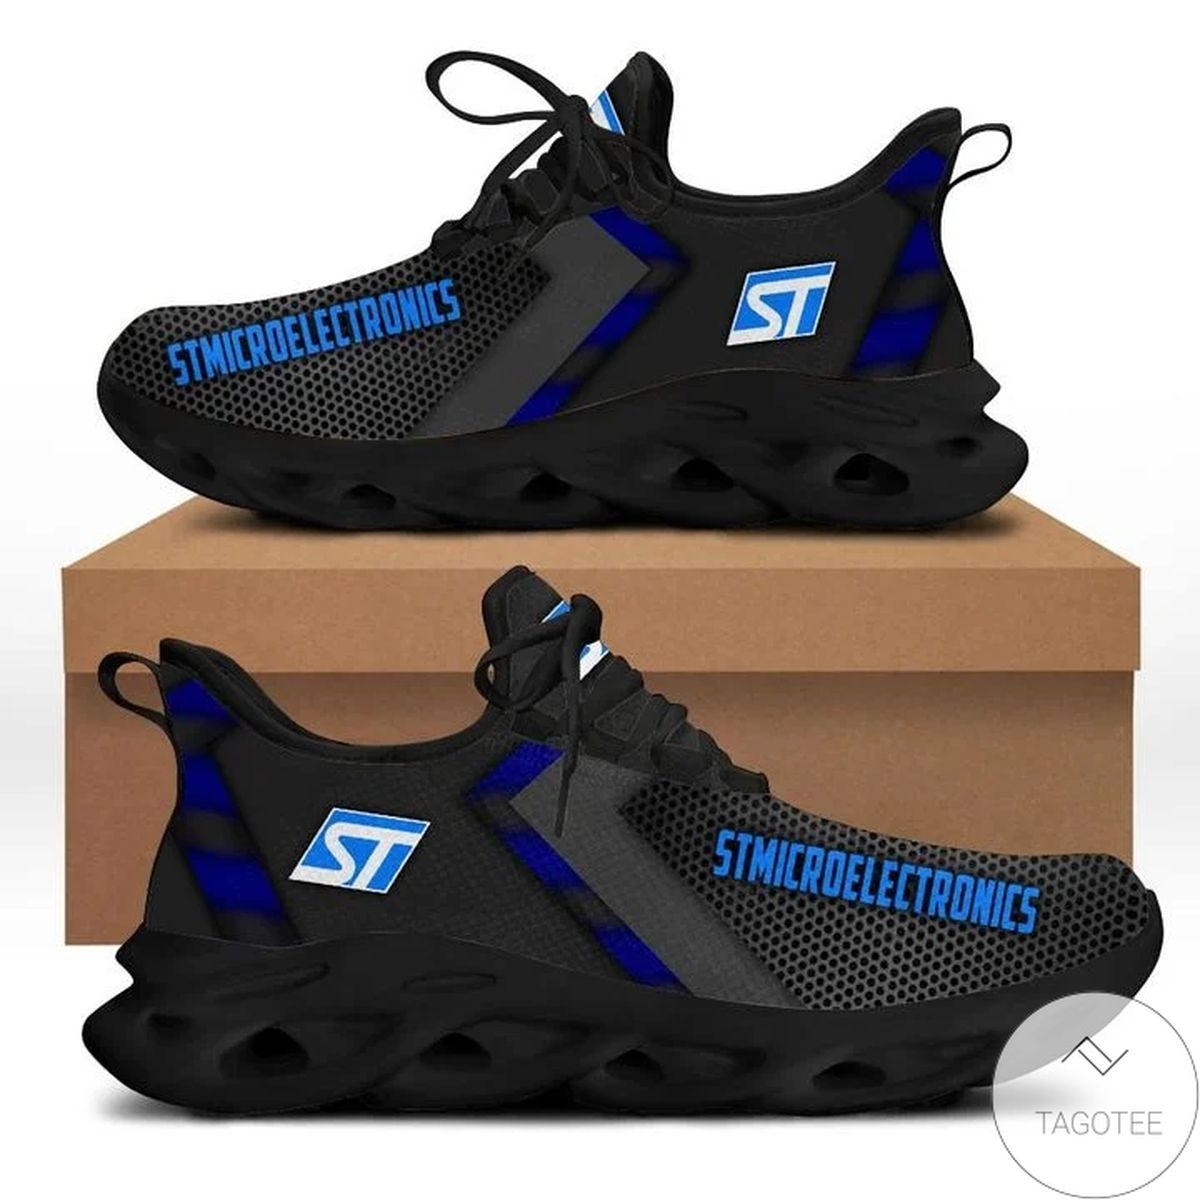 Real Stmicroelectronics Max Soul Shoes